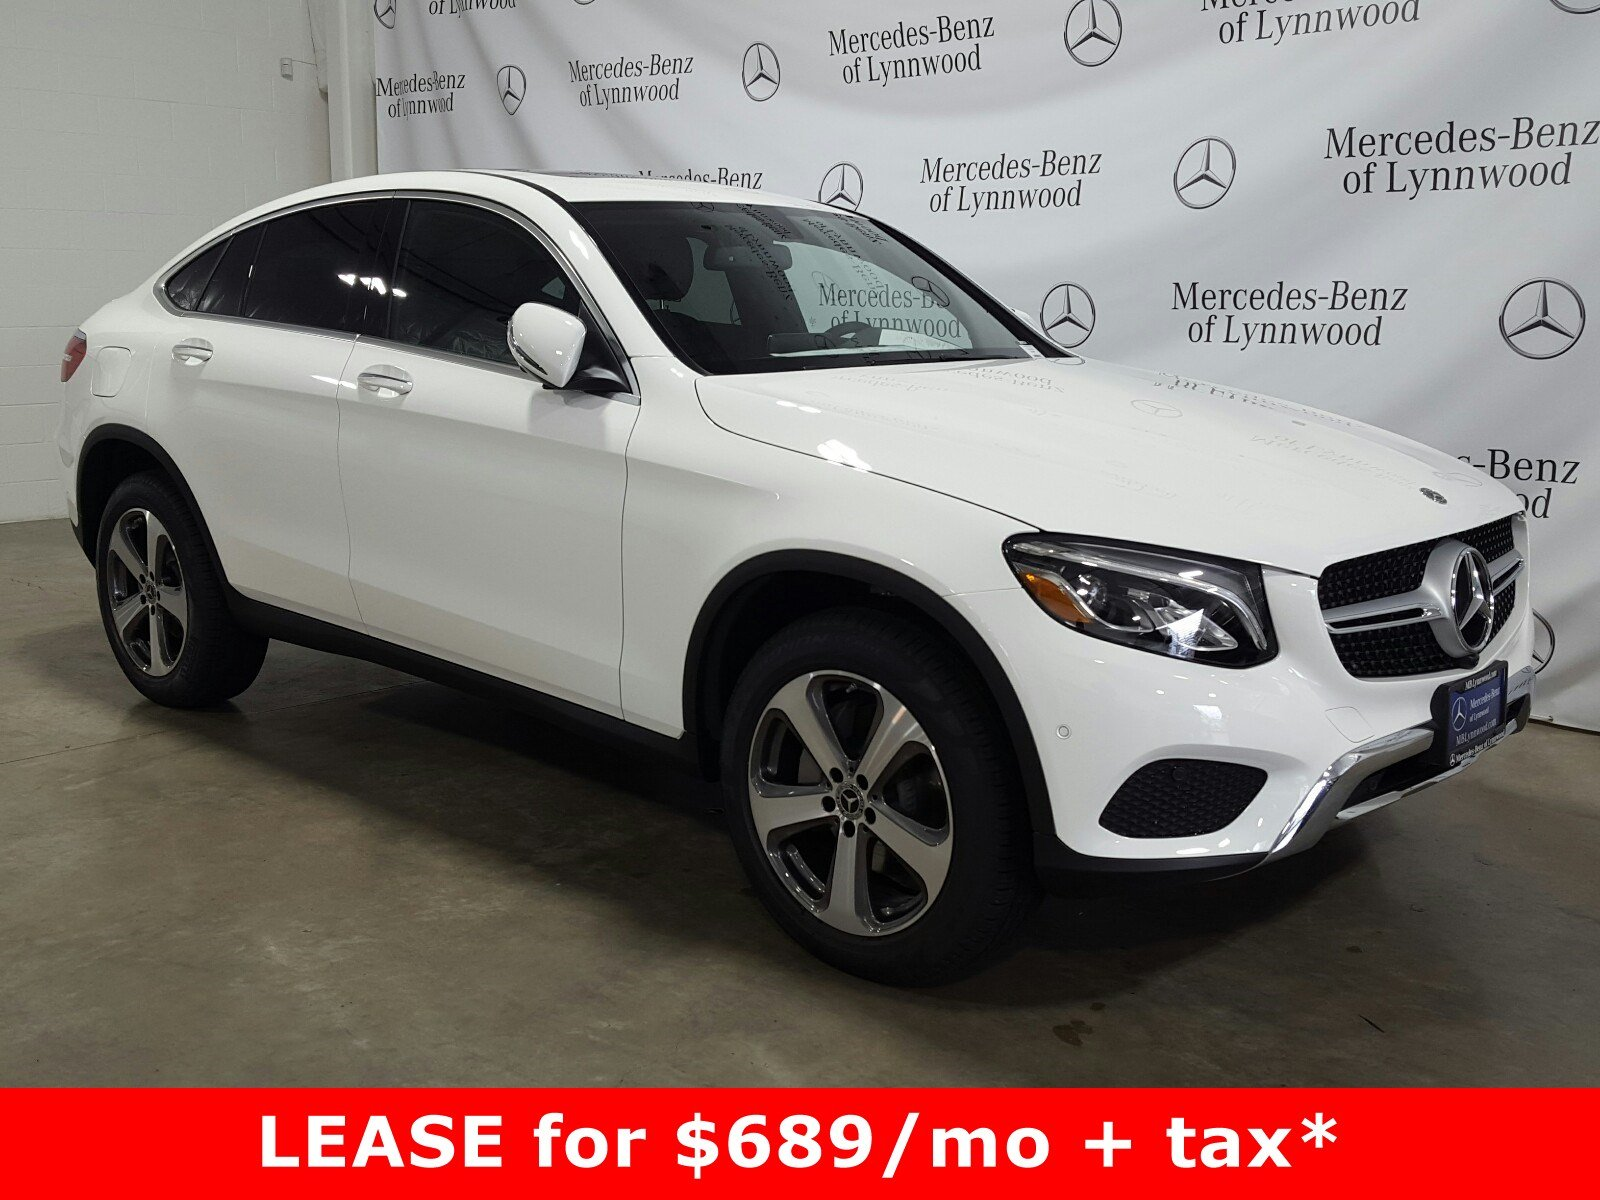 Pre Owned 2019 Mercedes Benz GLC GLC 300 4MATIC Coupe